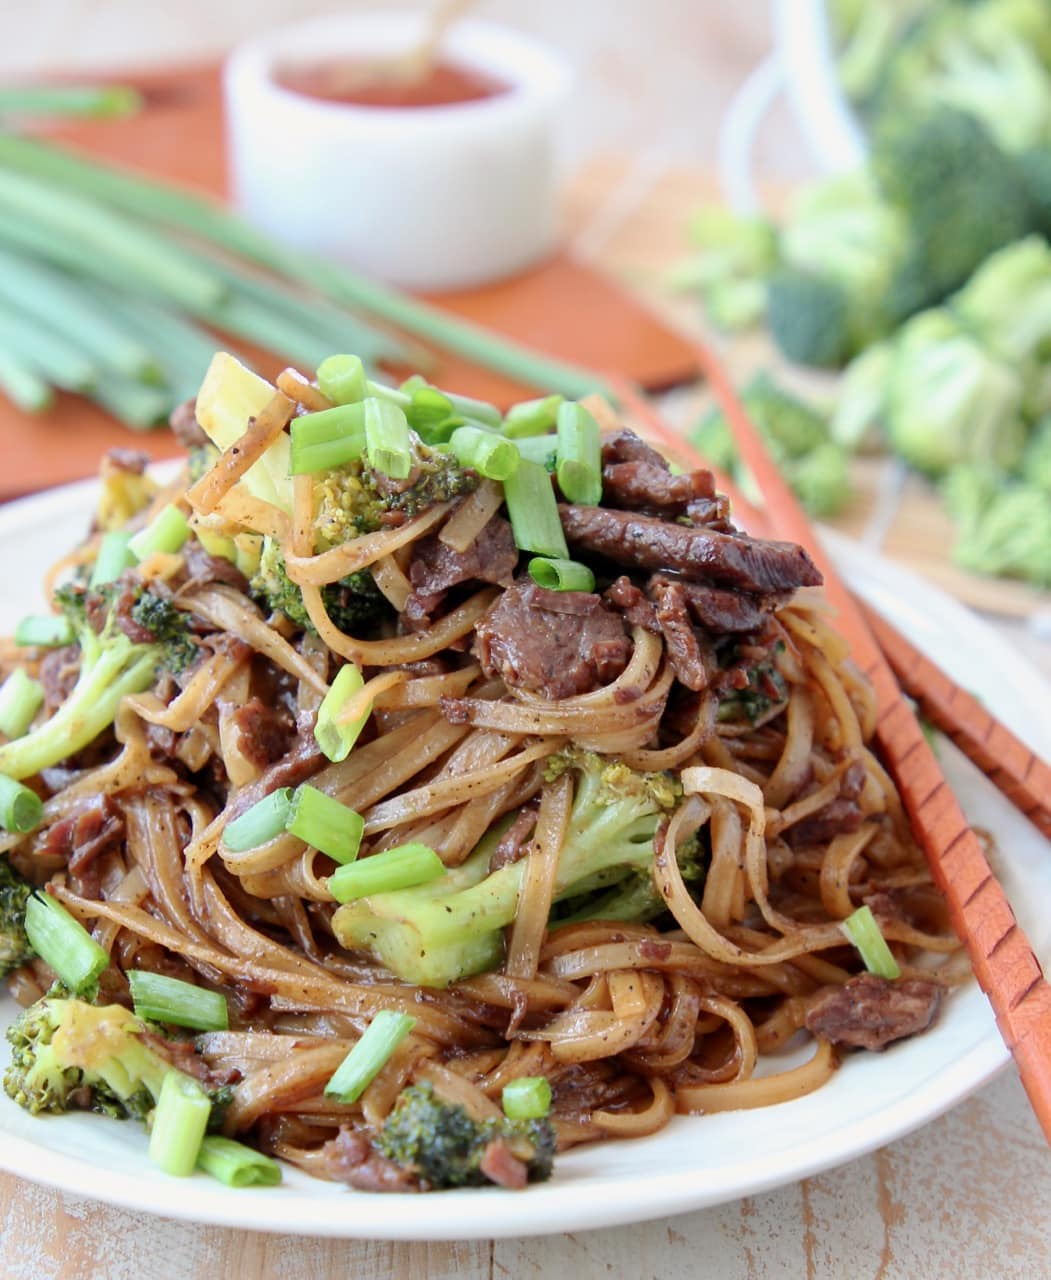 Black pepper beef and rice noodles with scallions on plate with wood chopsticks